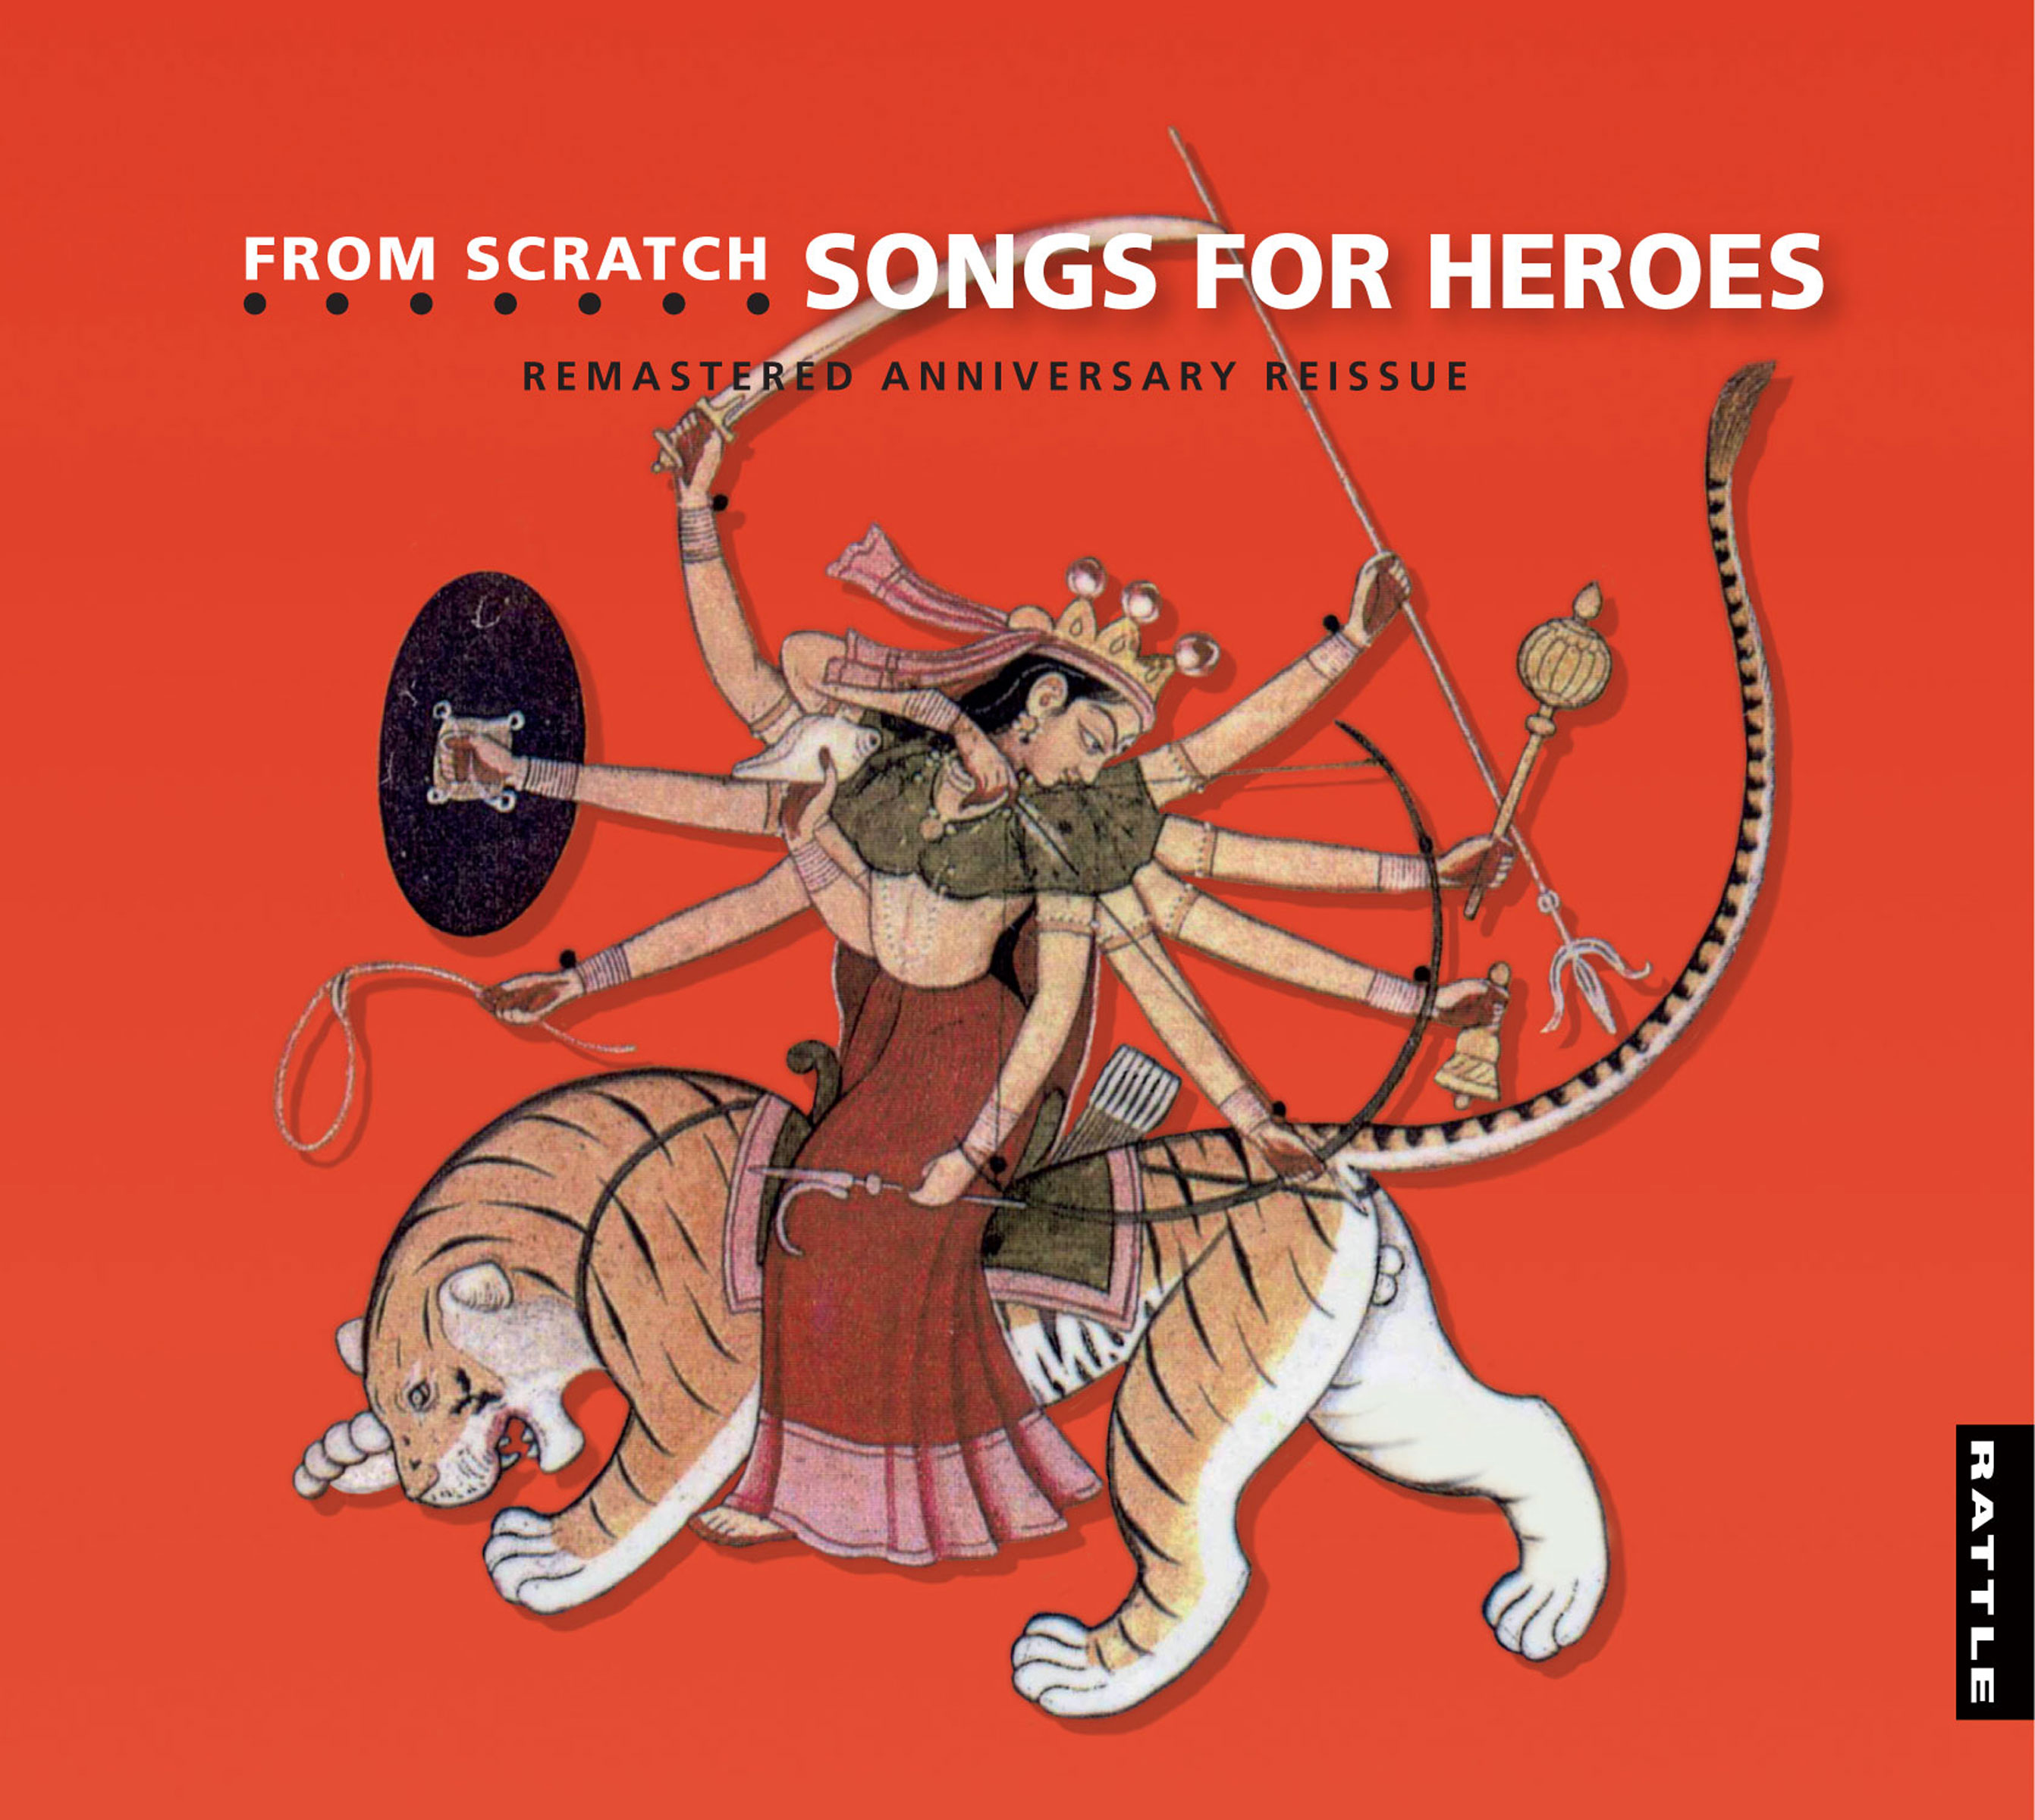 From Scratch   Songs for Heroes - downloadable MP3 ALBUM